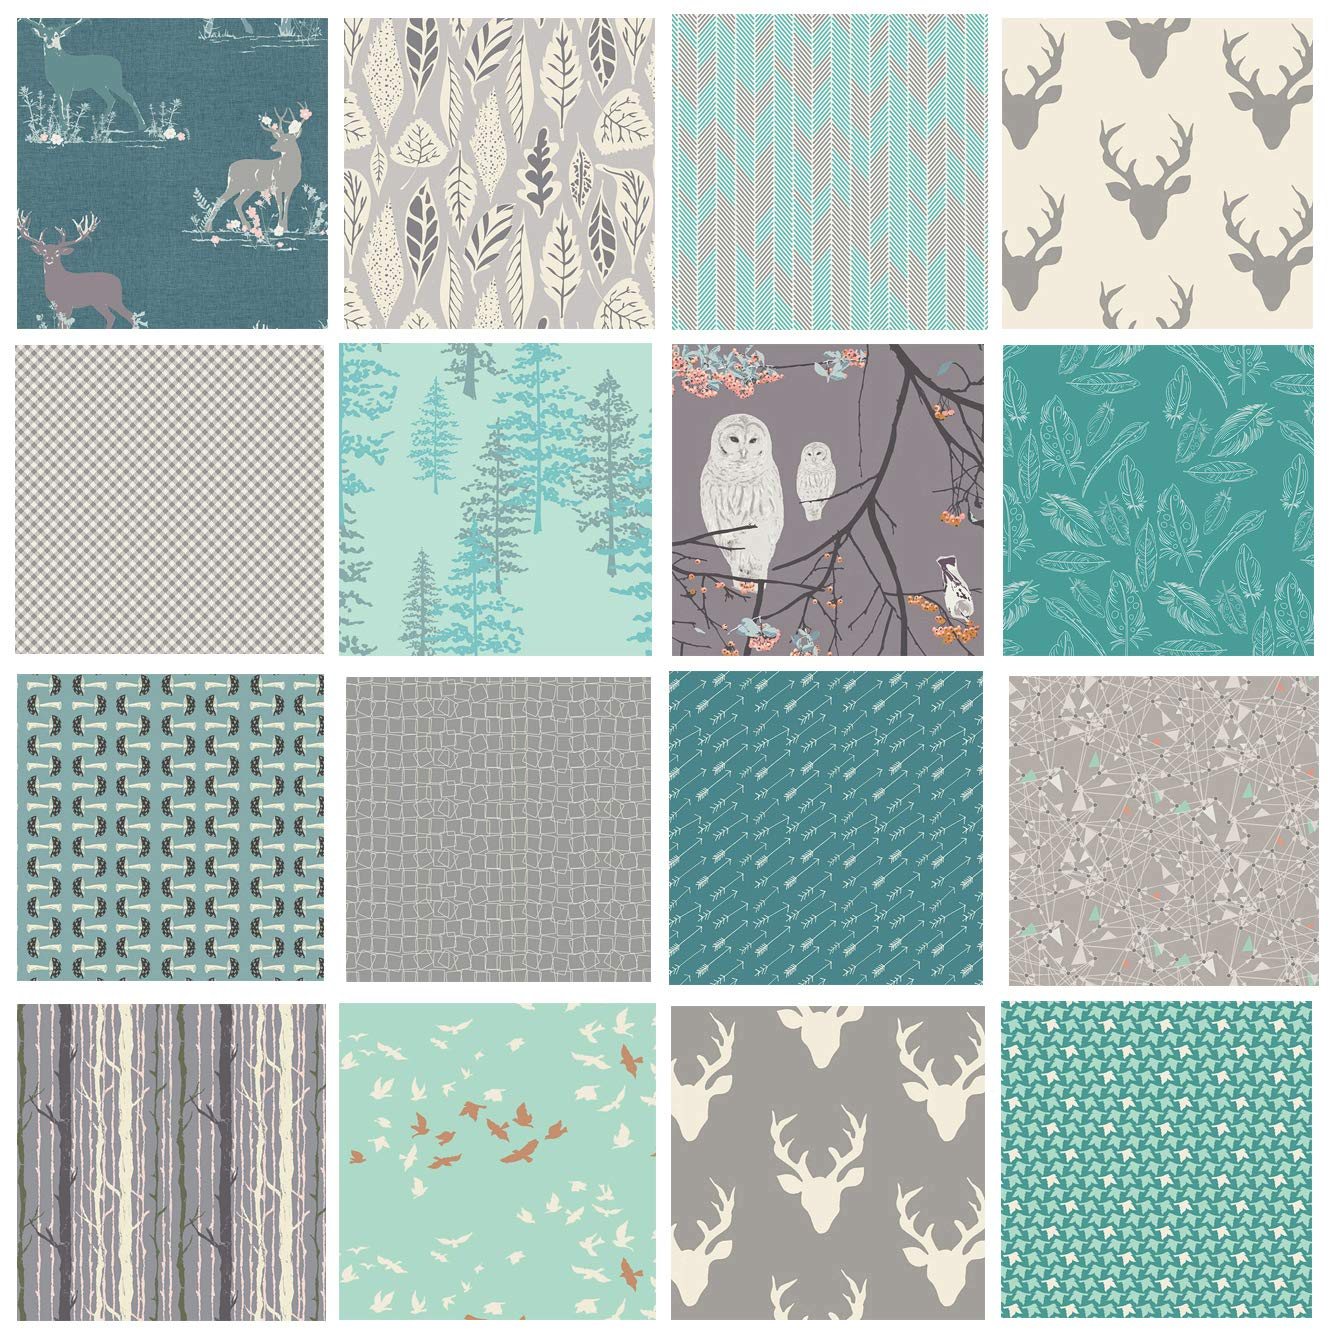 Hello Bear Quilting Bundle | Woodland Fabric Assortment | Forest Fat Quarters | Deer Head Fabrics | Owls Moths Mushrooms | Teal and Gray Fabric Bundle | Blithe Winged | Art Gallery (Fat Quarters) by Art Gallery Fabrics